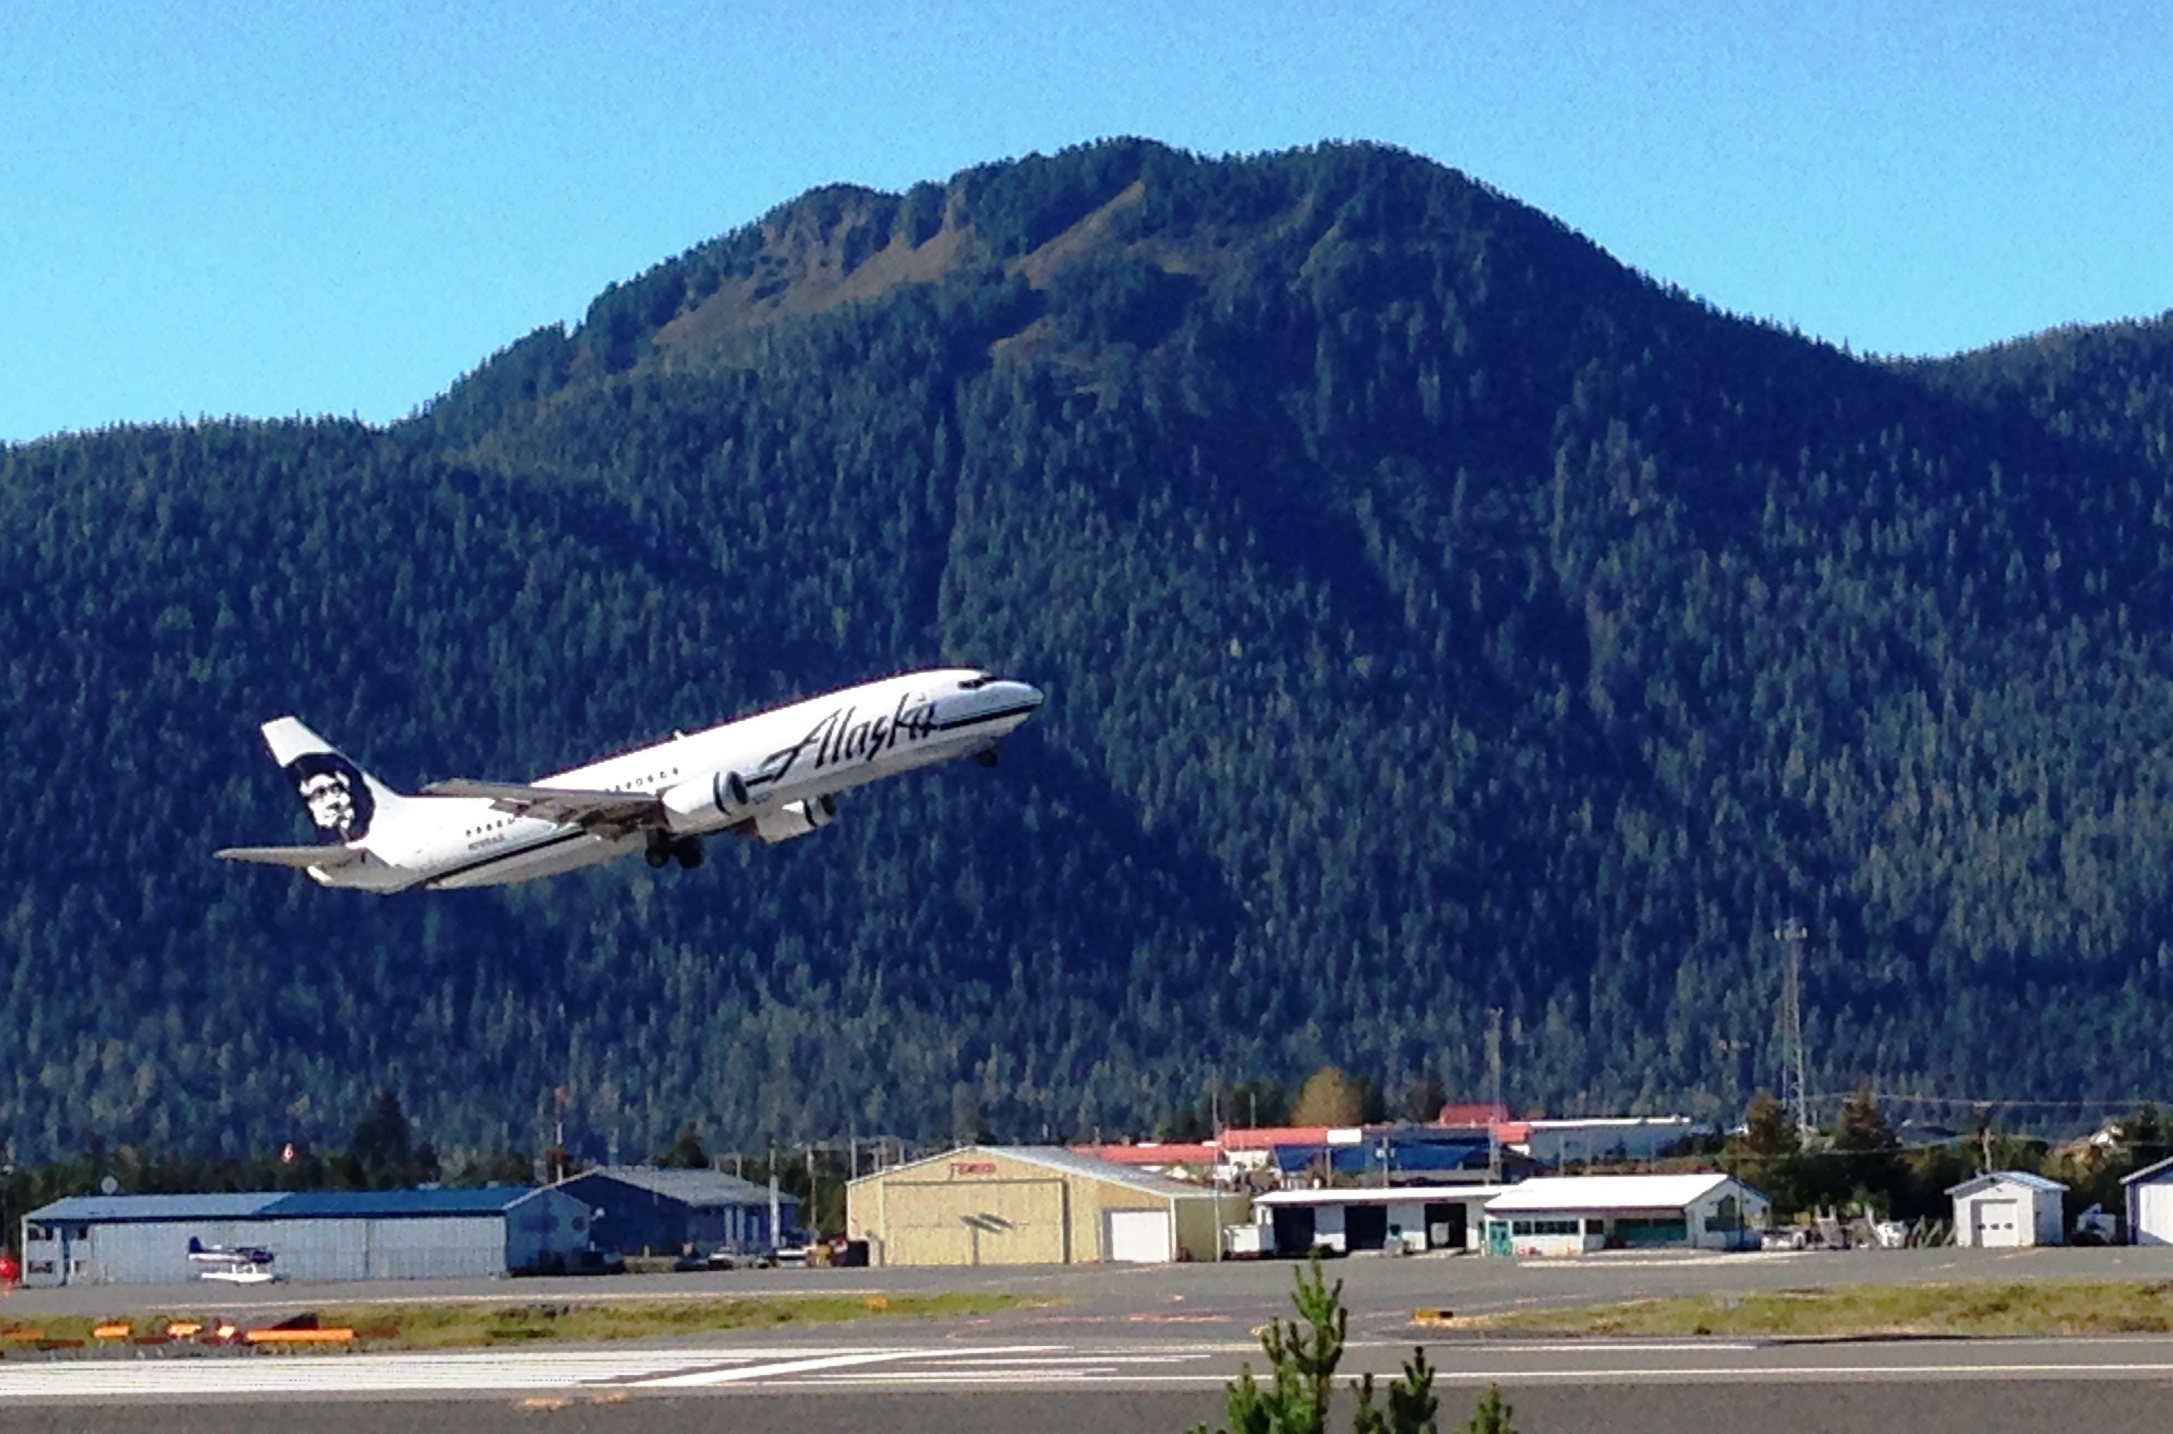 alaska airlines social responsibility project 19102015 alaska airlines last major reported  shows the airline takes its corporate social responsibility seriously in  gallon biofuels project with.